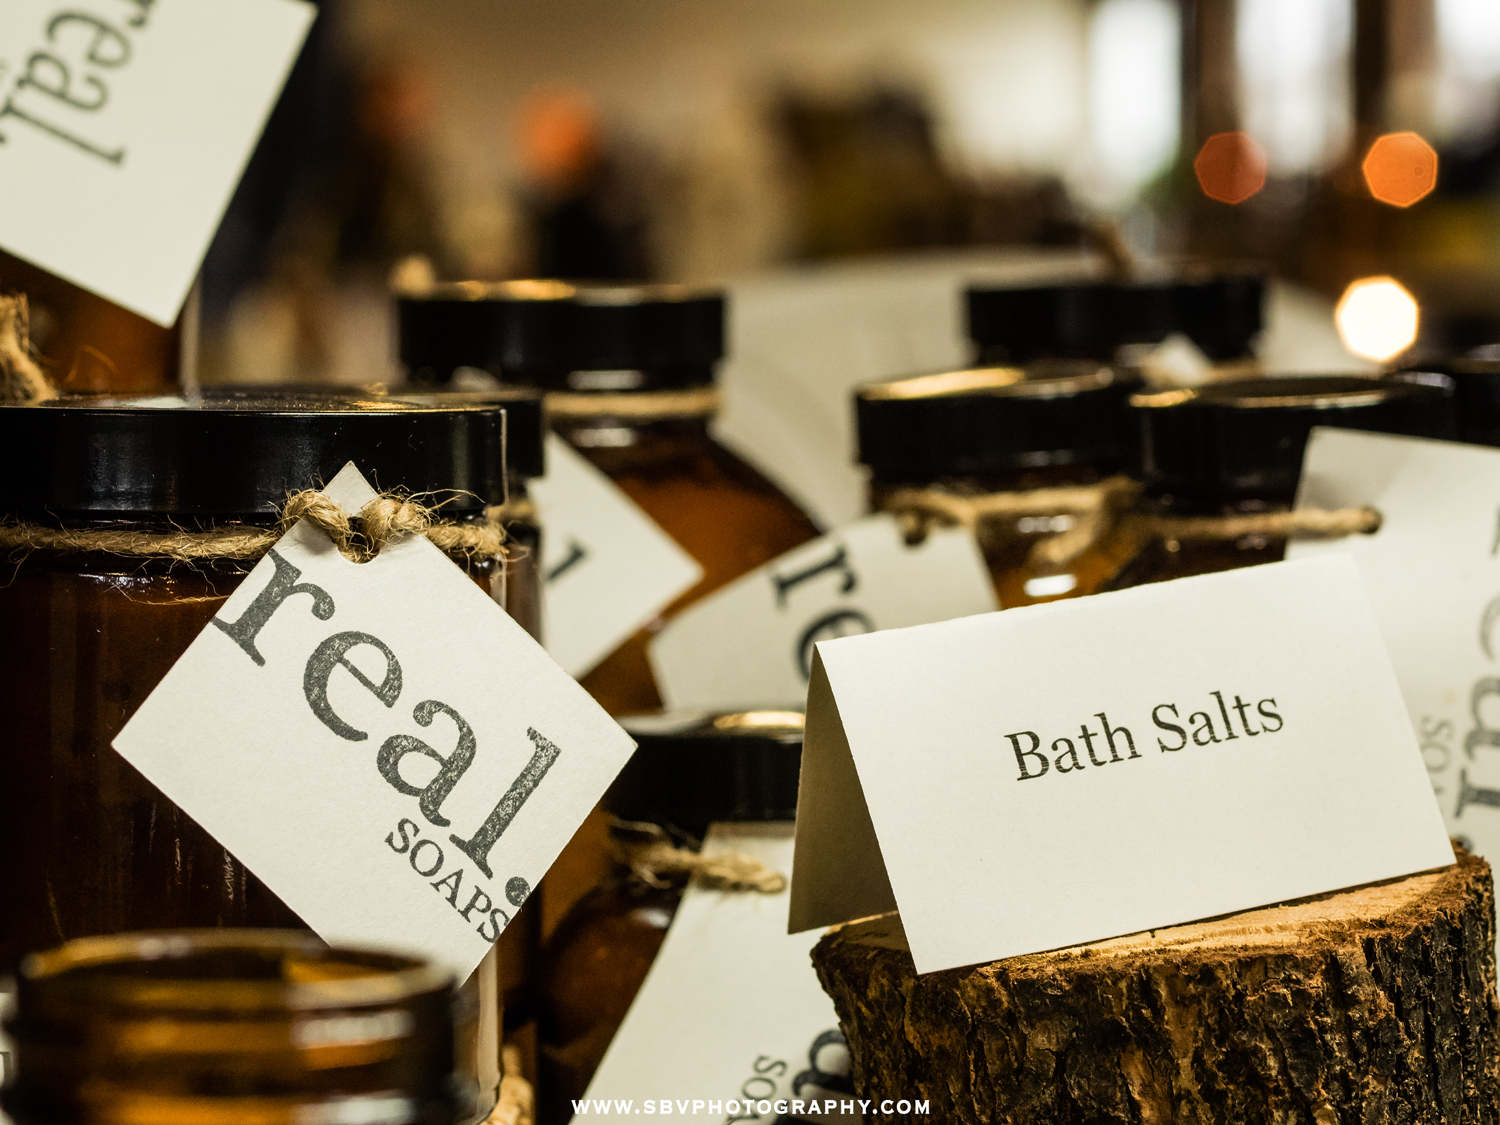 Real soaps and bath salts.